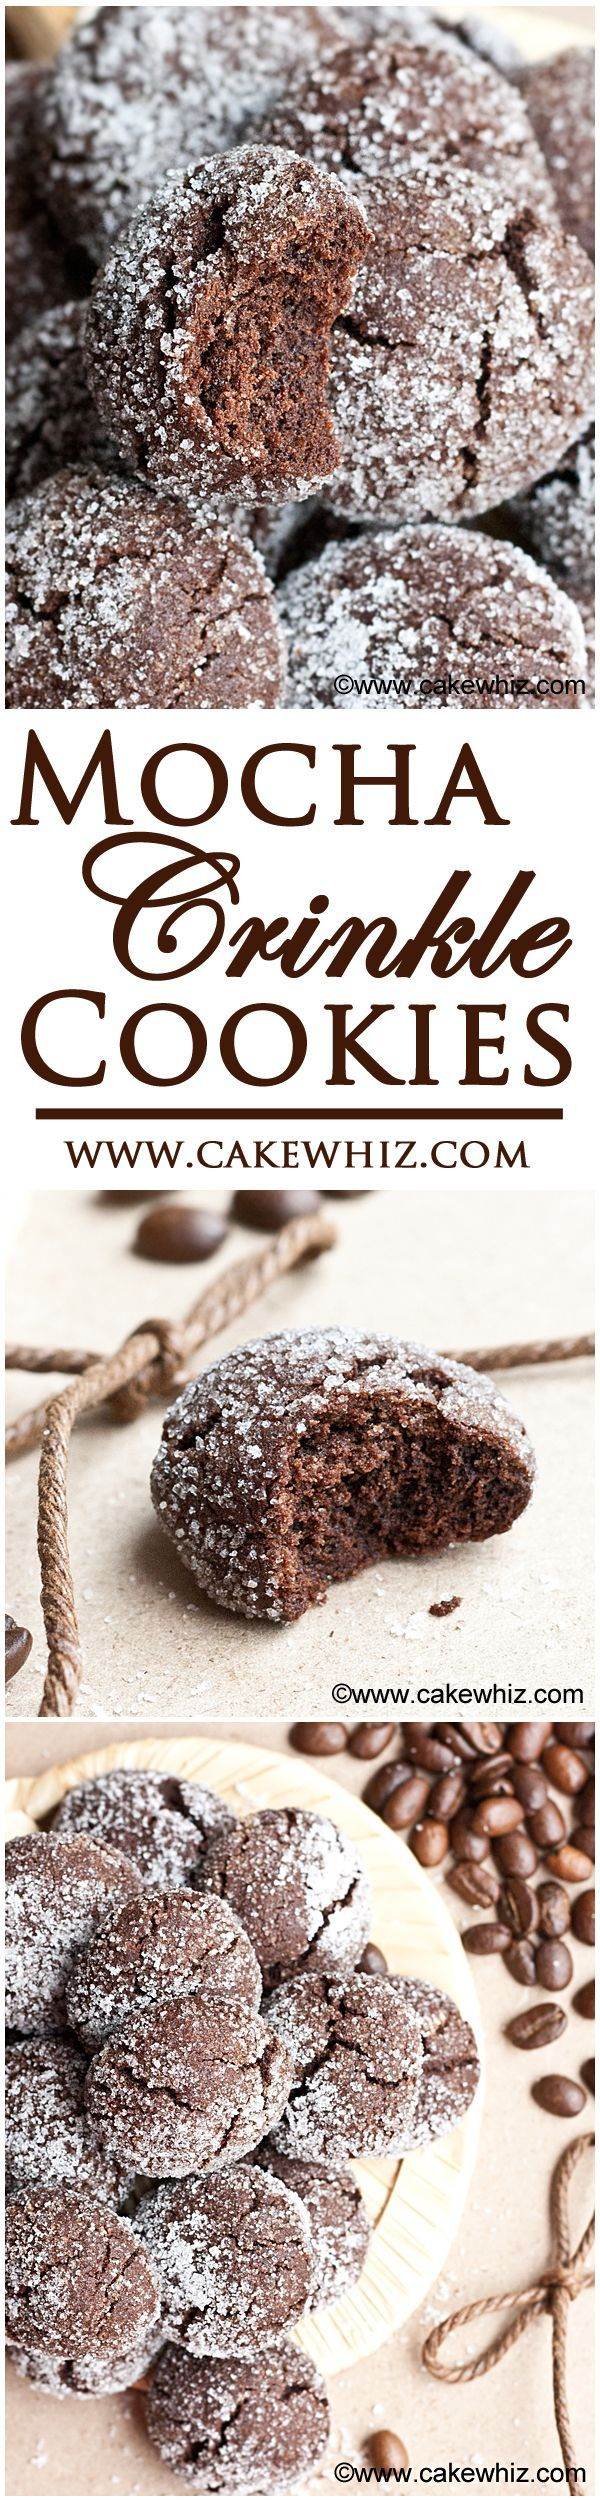 These soft MOCHA CRINKLE COOKIES have a rich chocolate and coffee flavor and crispy, sugary tops! Also, great for gift-giving or just snacking! From cakewhiz.com